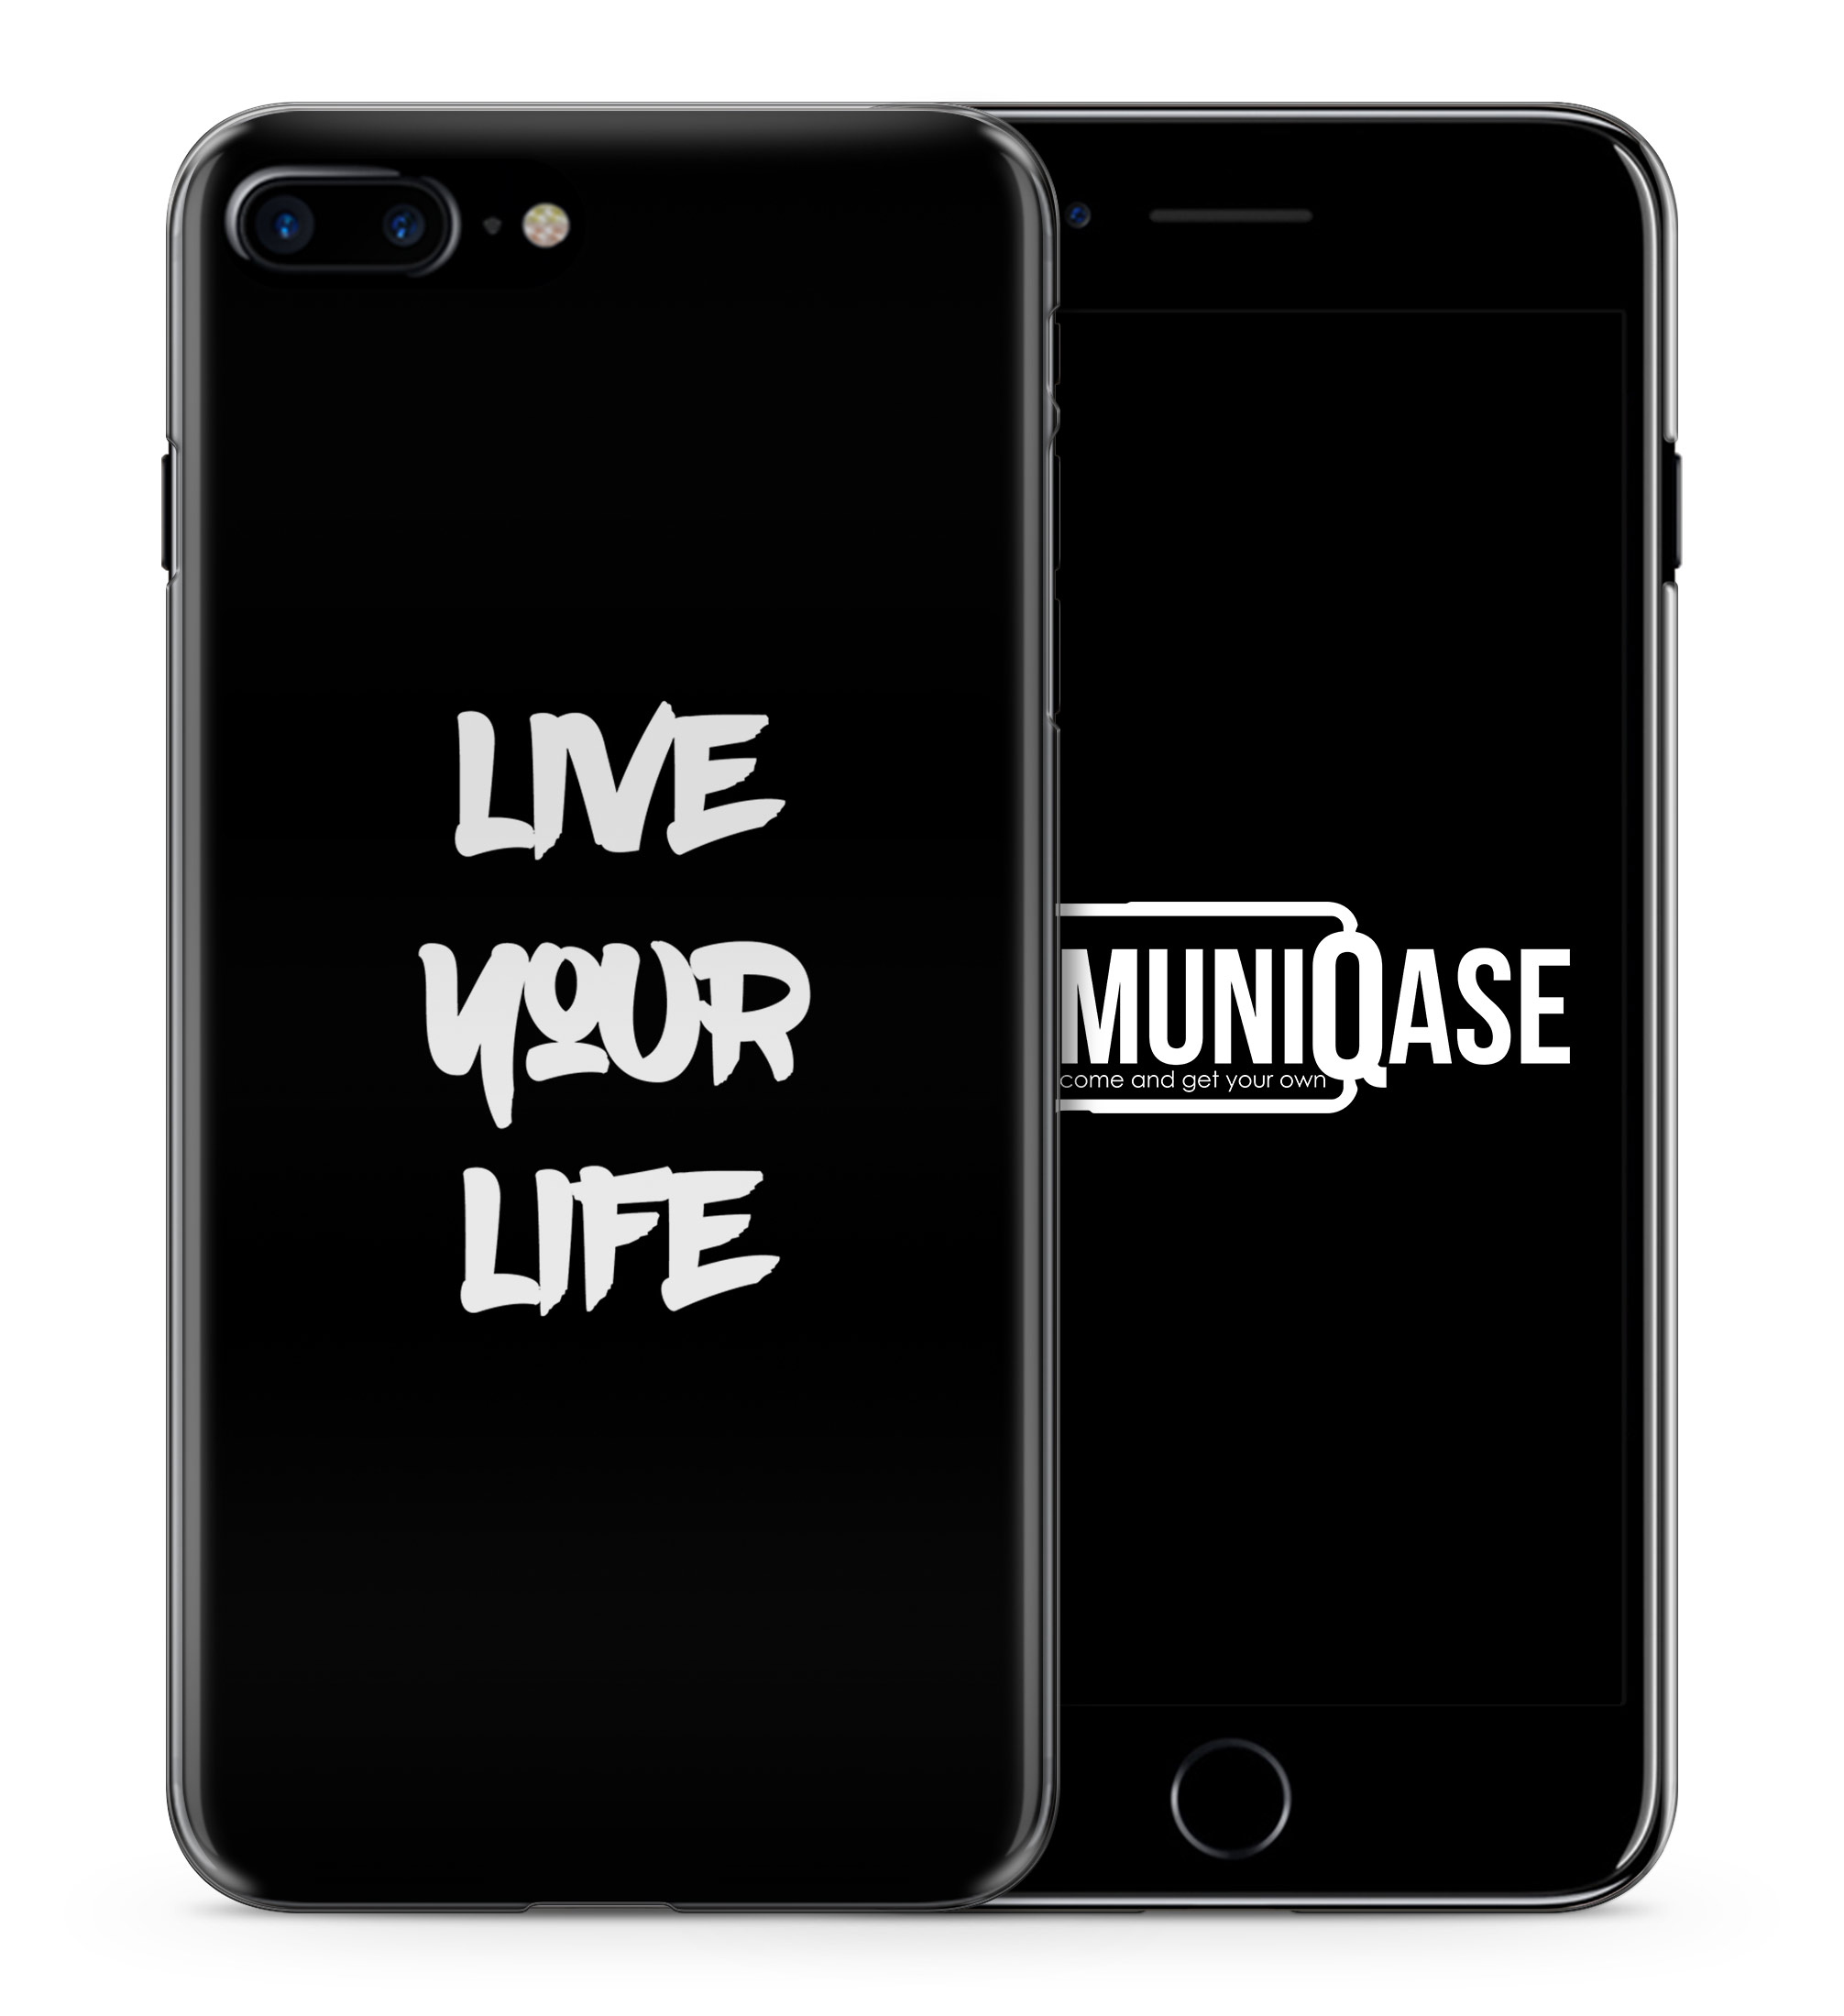 Live Your Life Schwarz - Slim Handyhülle für iPhone 7 Plus